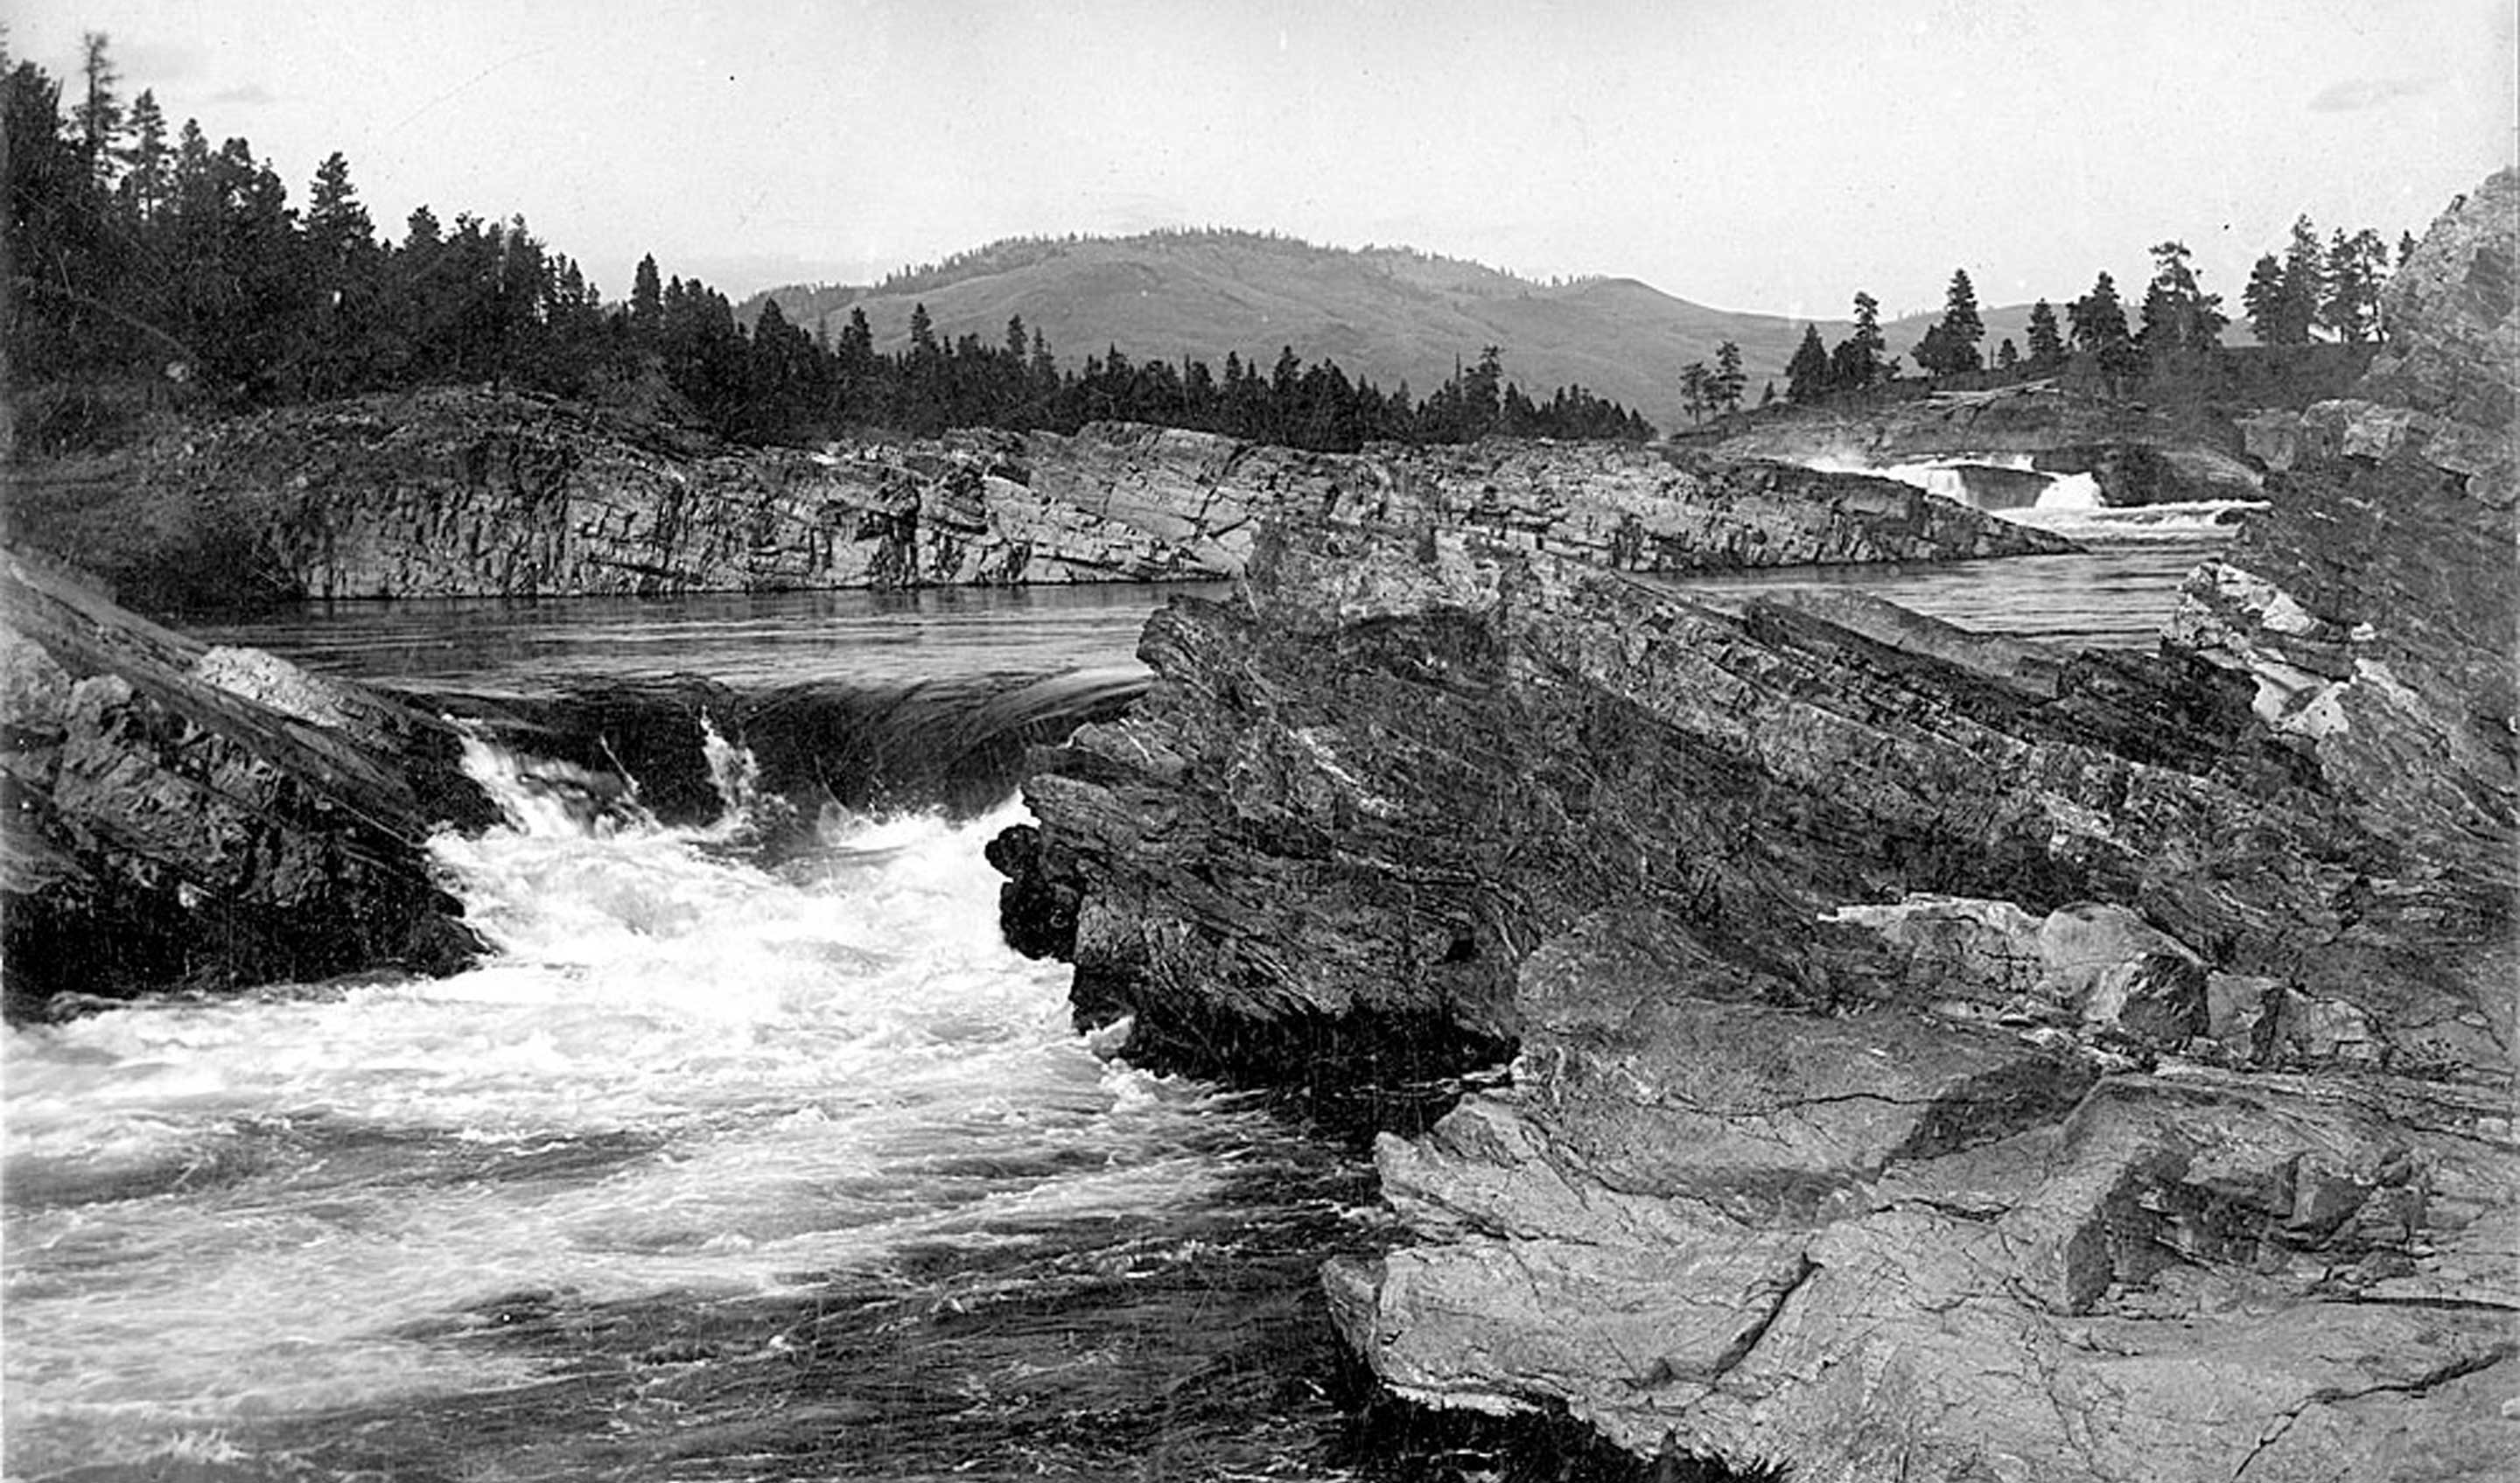 Kettle Falls, Bigger than Celilo, Silenced Over 75 Years Ago